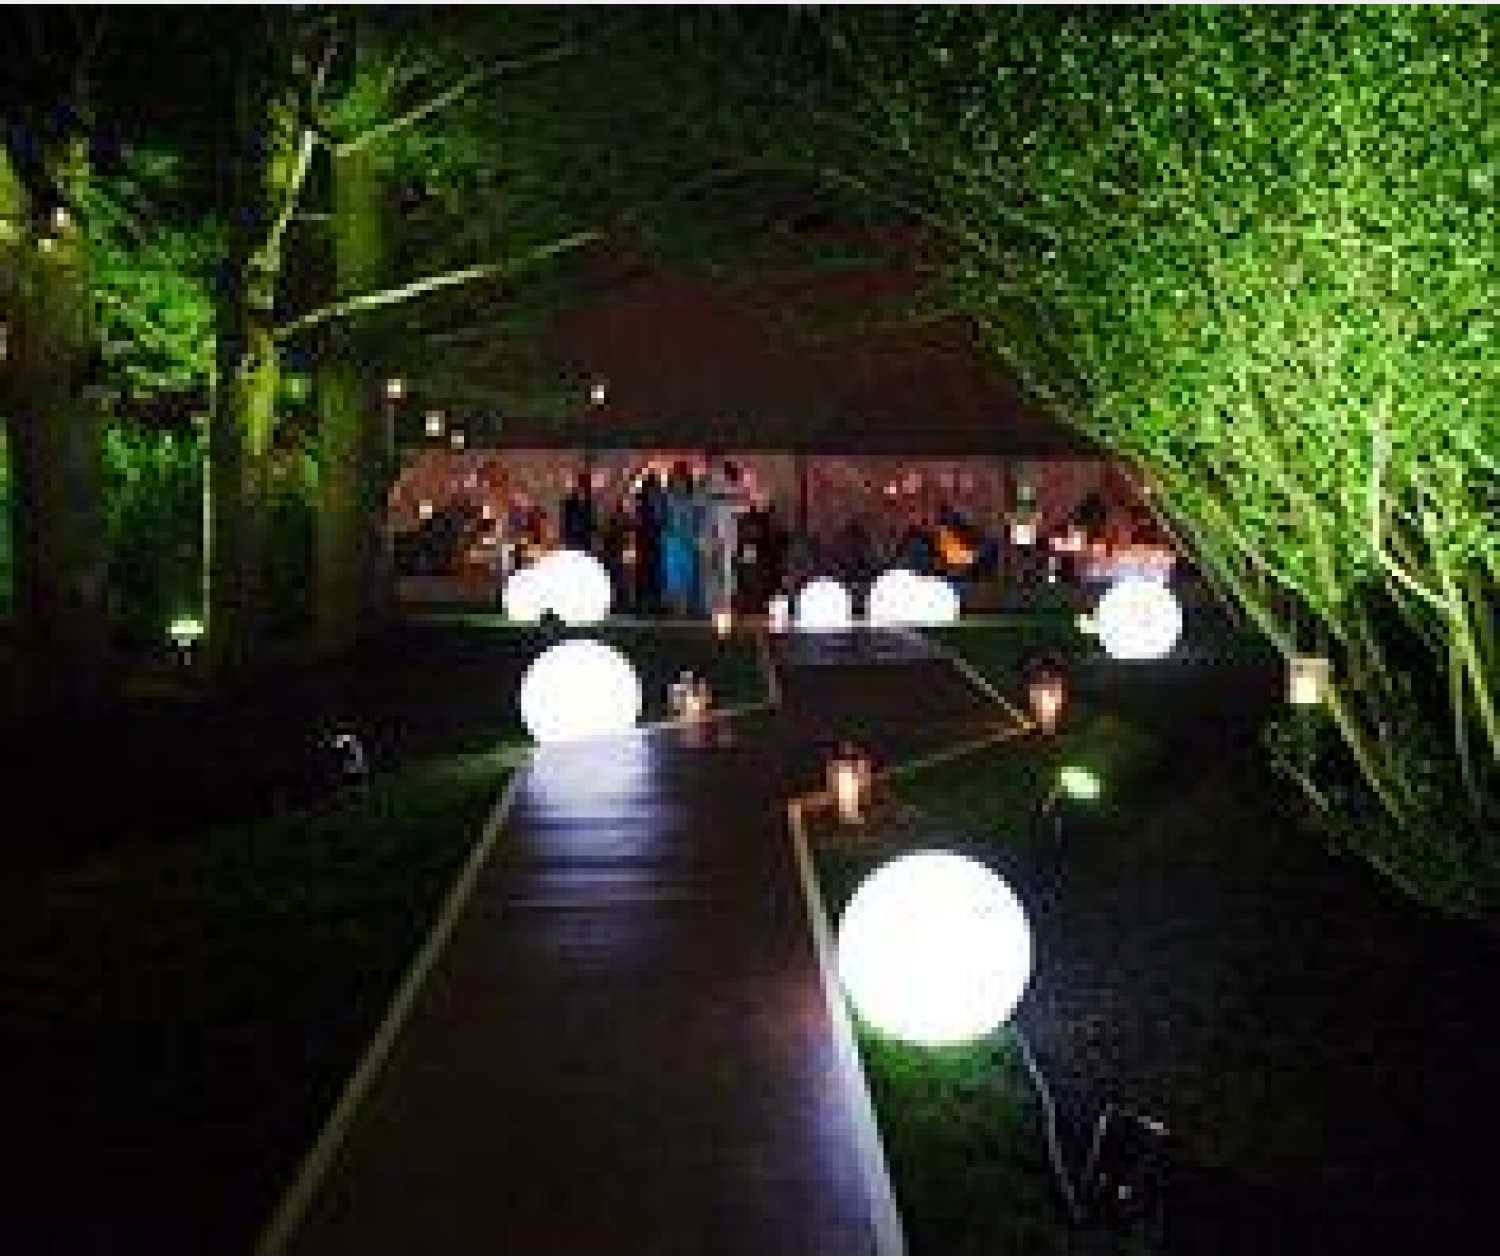 Lighting ideas for wedding